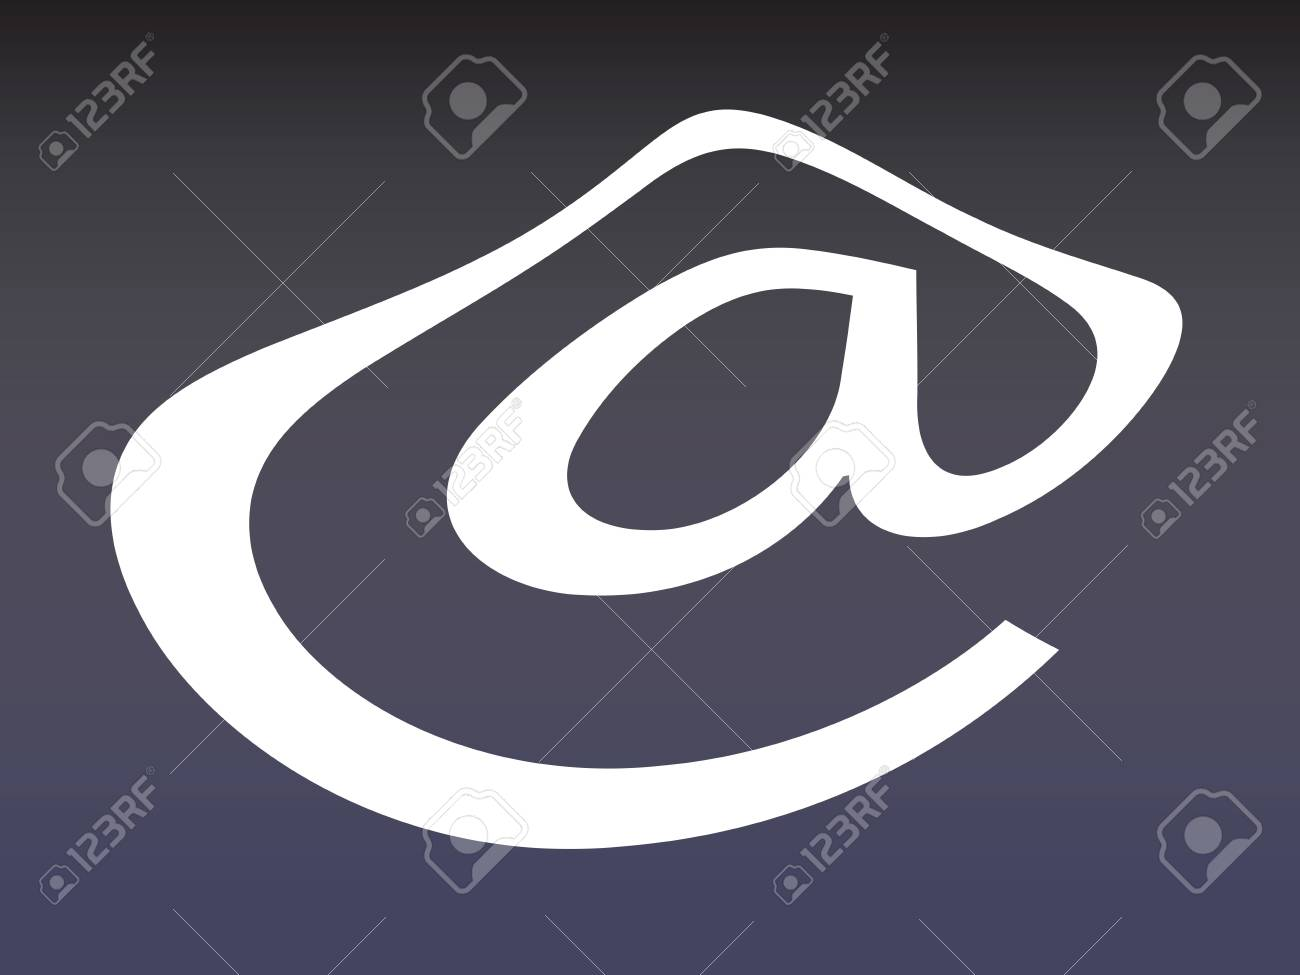 Symbol Of Alpha Mail Stock Photo Picture And Royalty Free Image